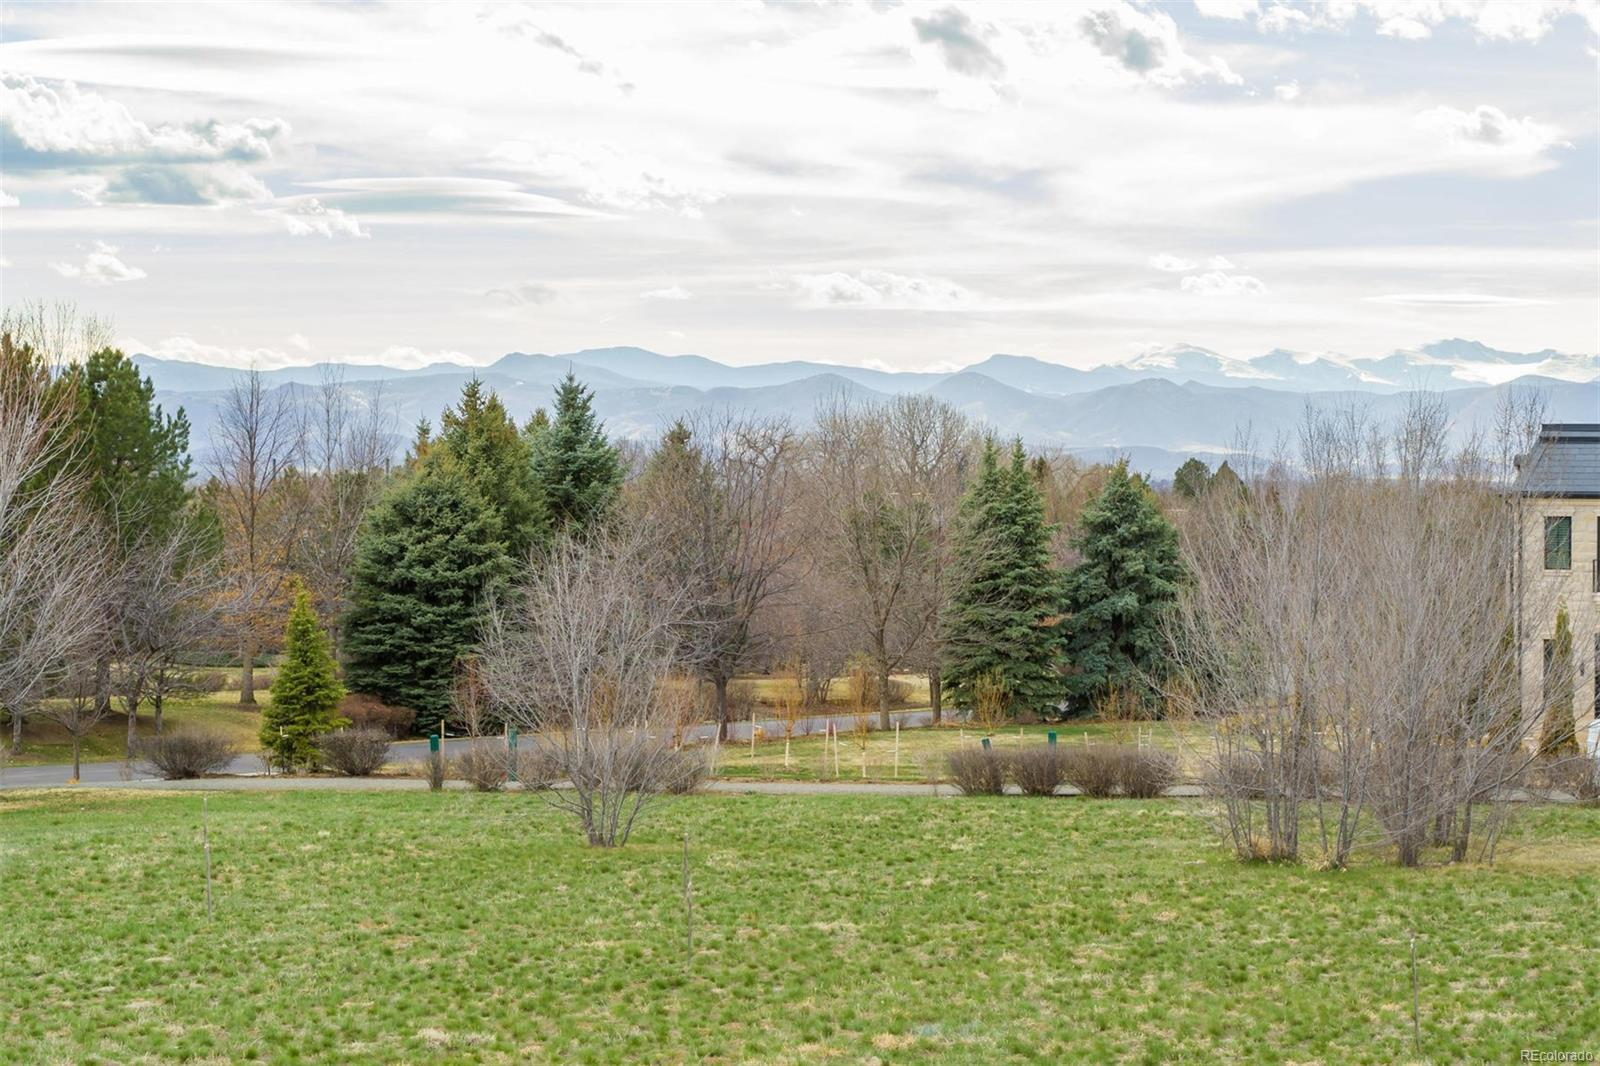 5 Cherry Hills Park Drive, Cherry Hills Village, CO 80113 - Cherry Hills Village, CO real estate listing